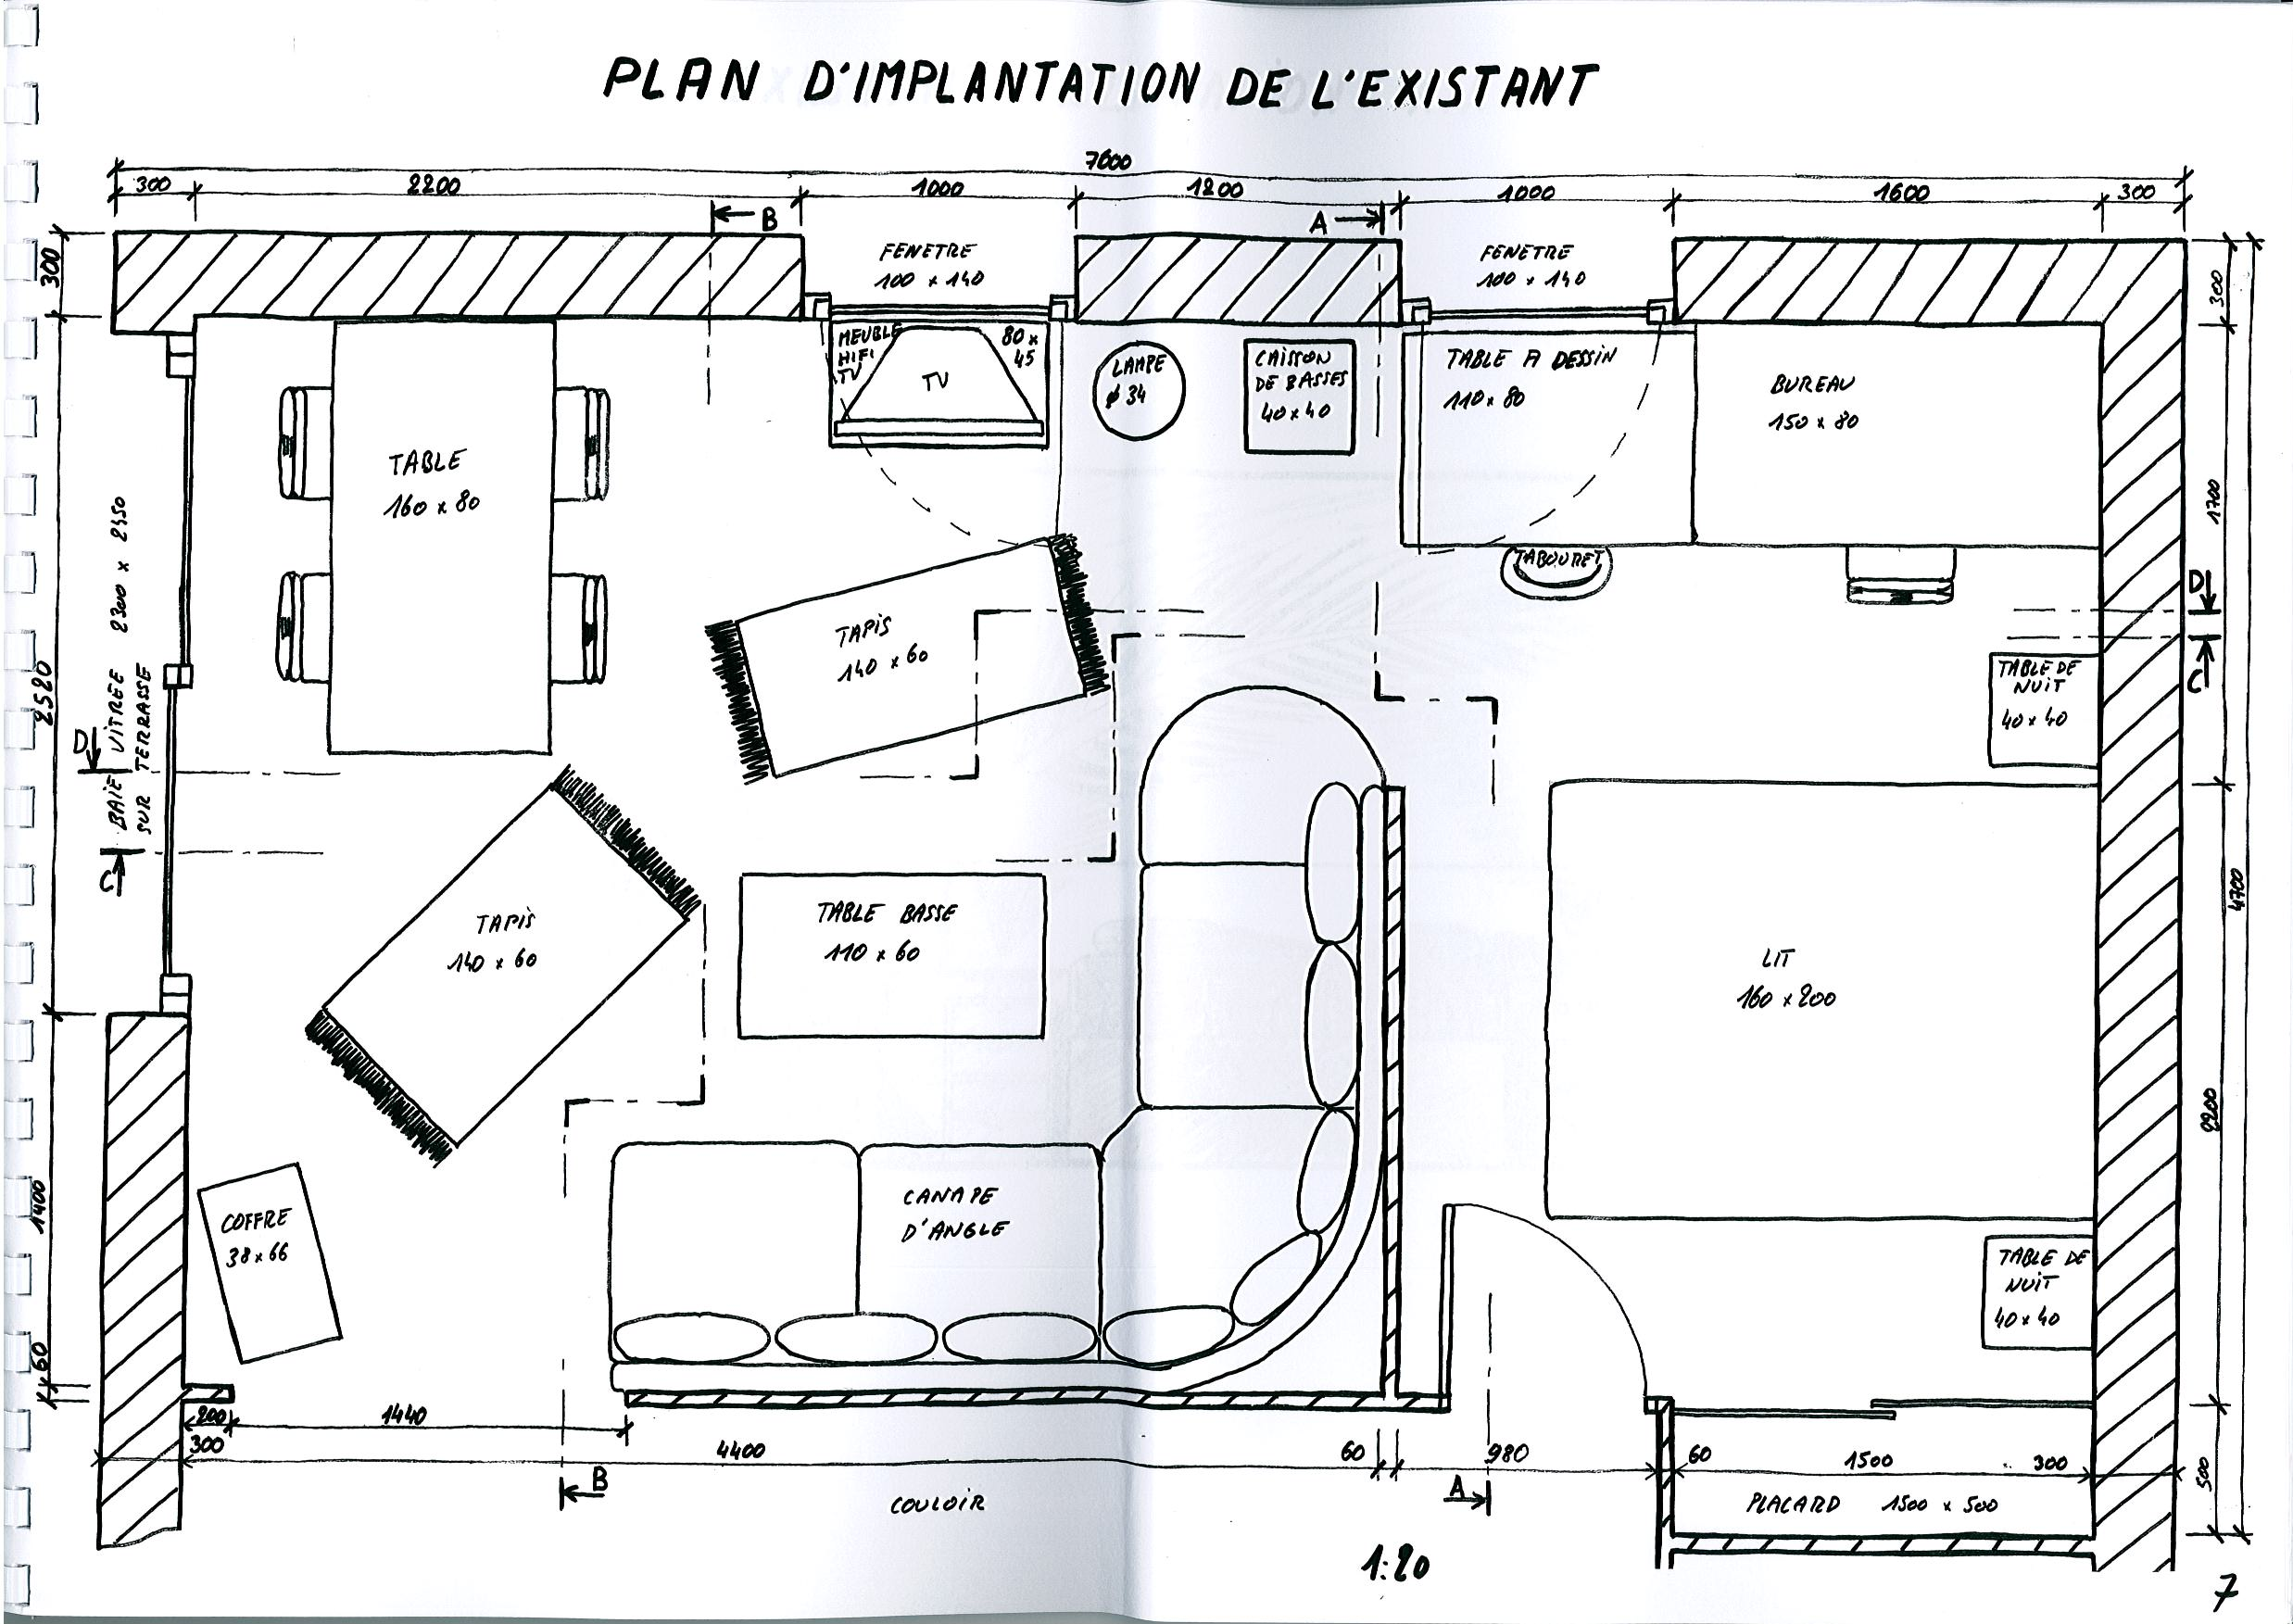 Am nagement d un salon s jour contemporain esquisses en architecture d 39 - Plan amenagement salon ...